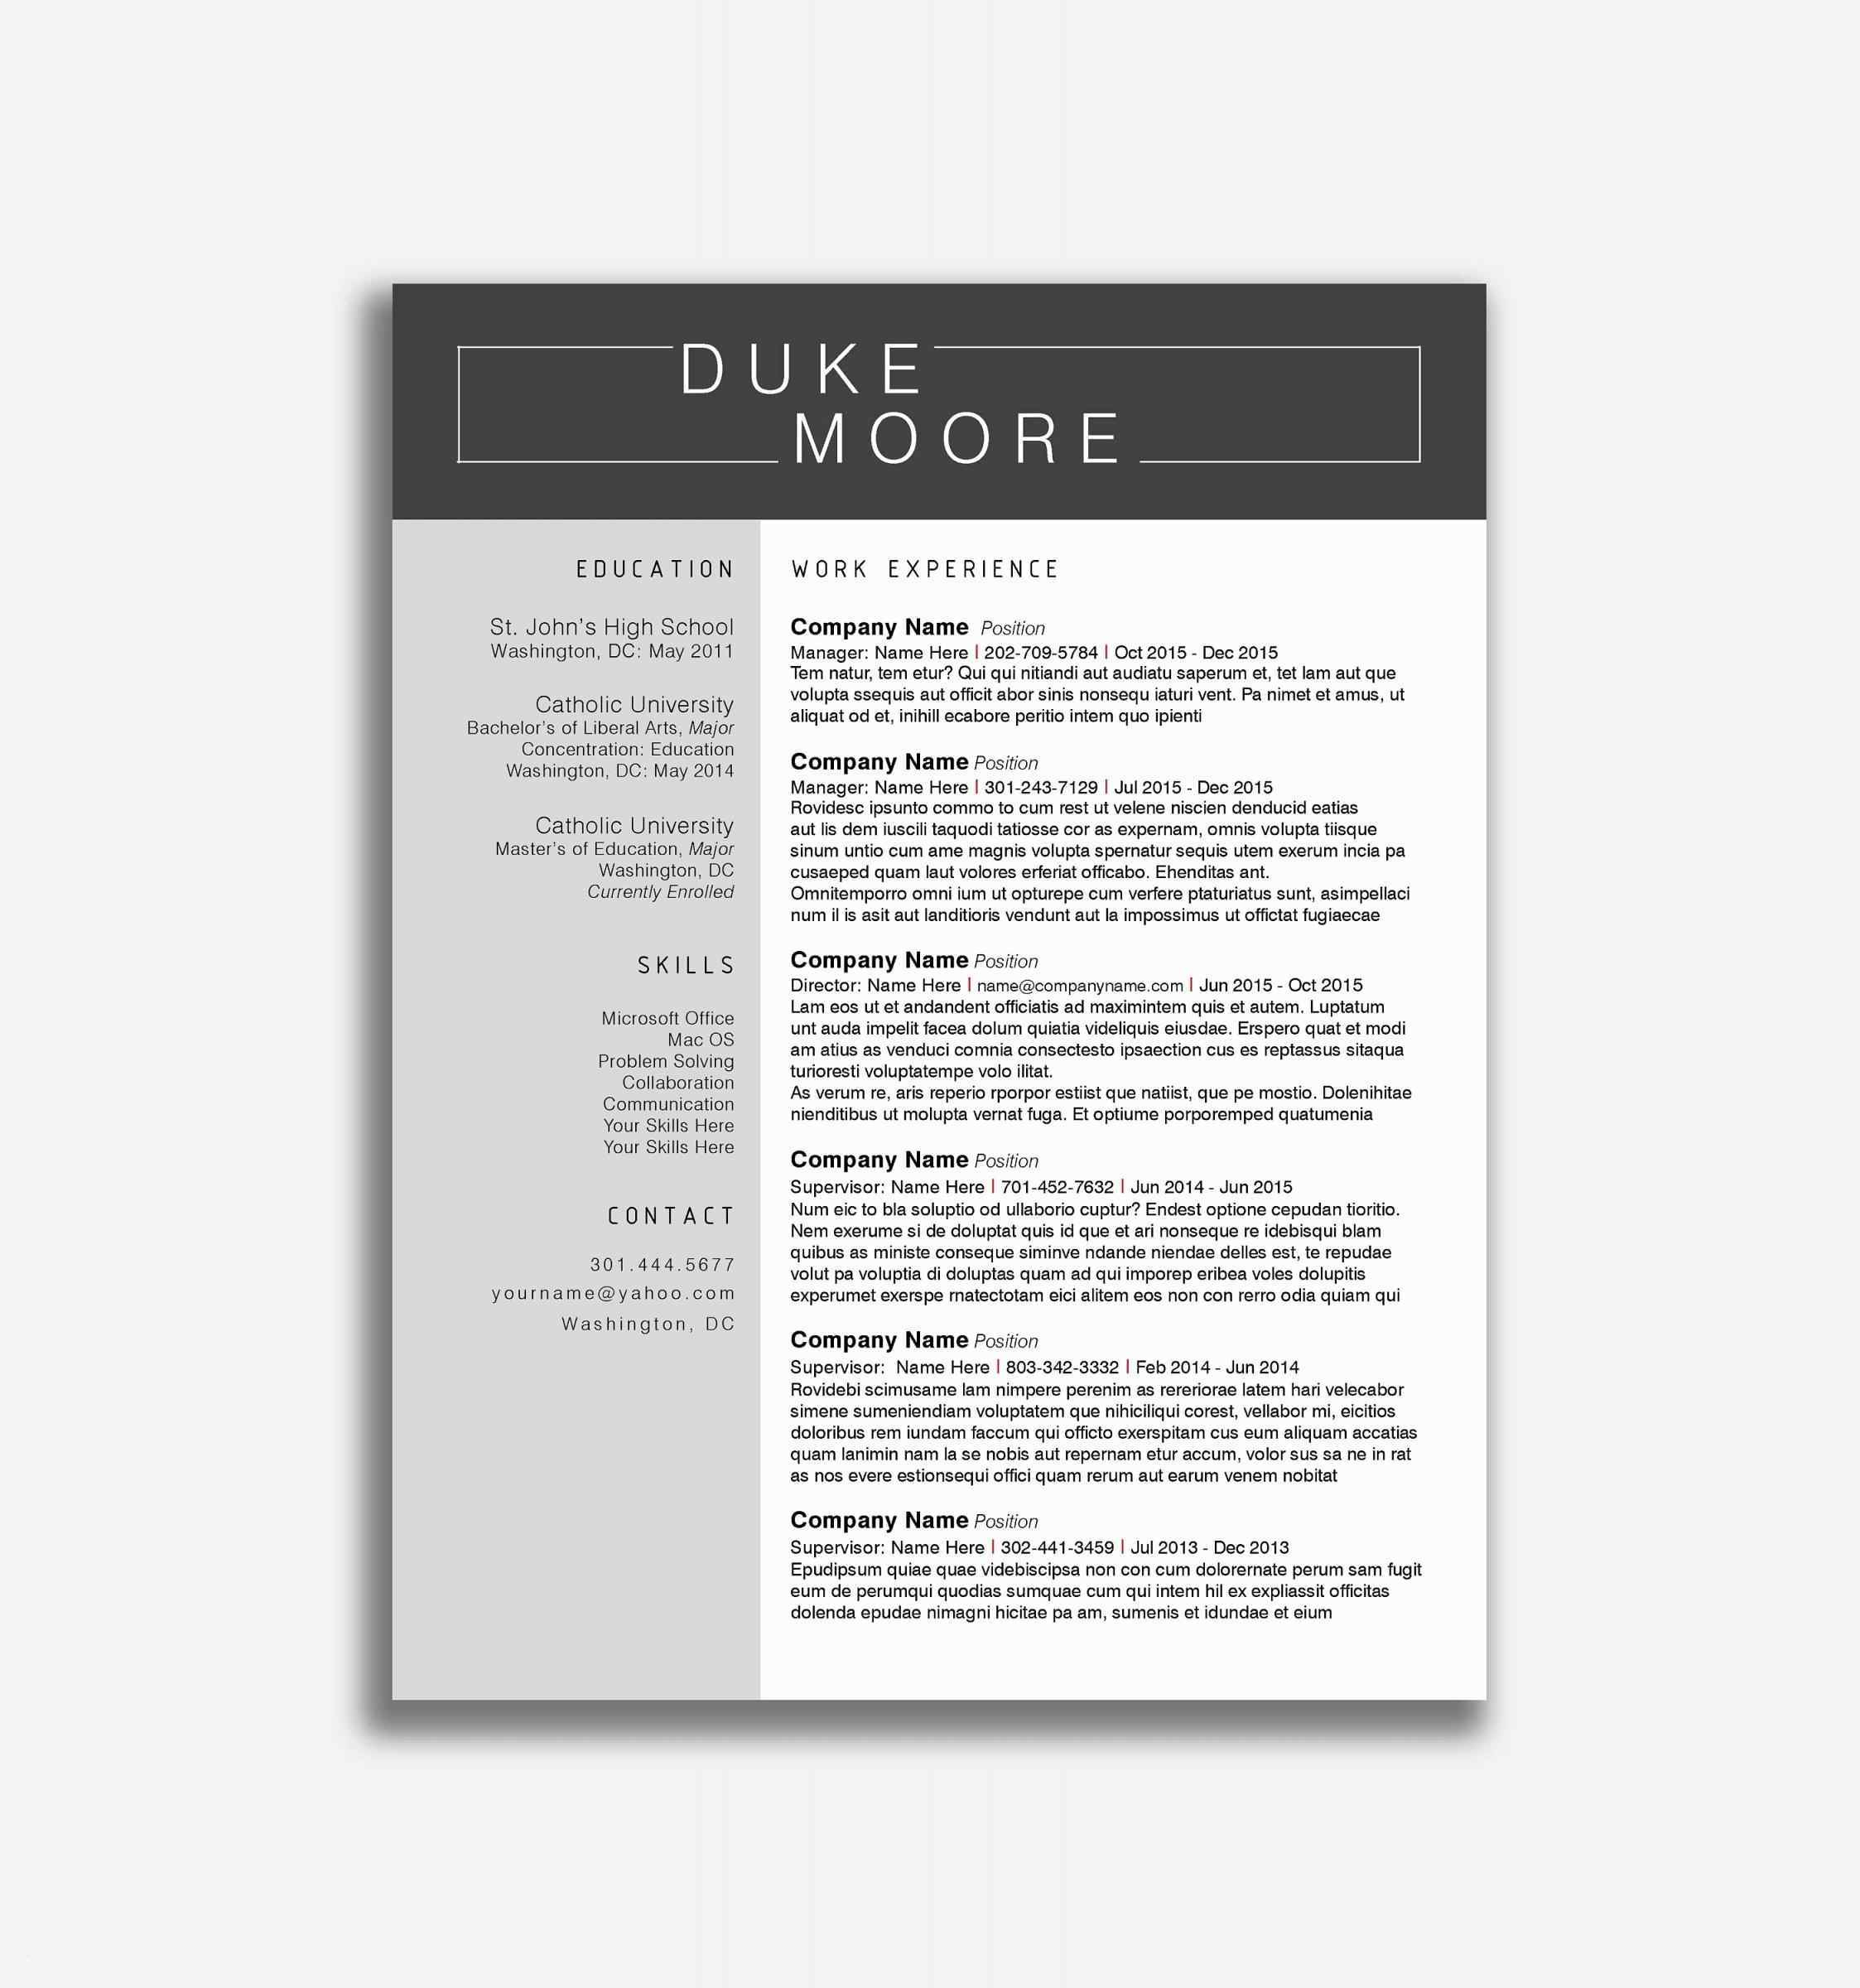 Resume Template for Supervisor Position - Resume Template Free Word Elegant Lebenslauf Vorlage Word Gratis